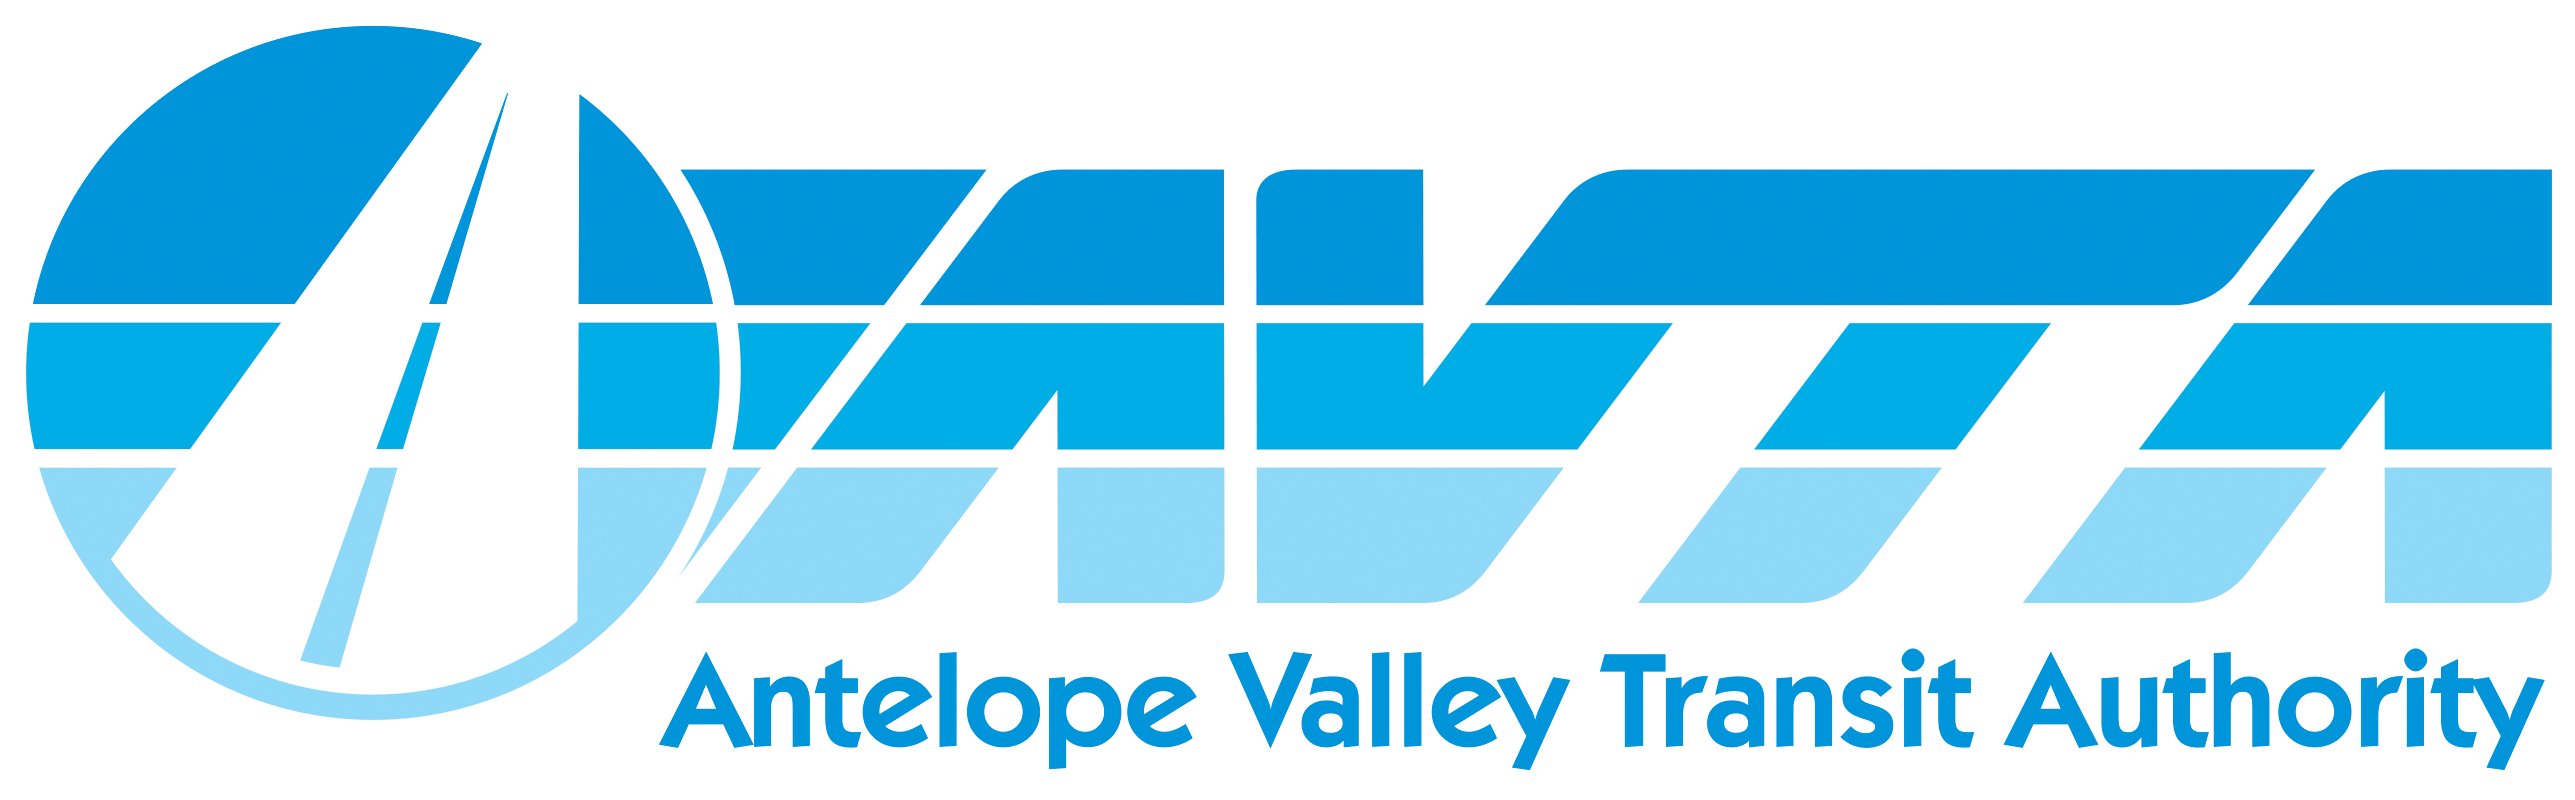 Antelope Valley Transit Authority